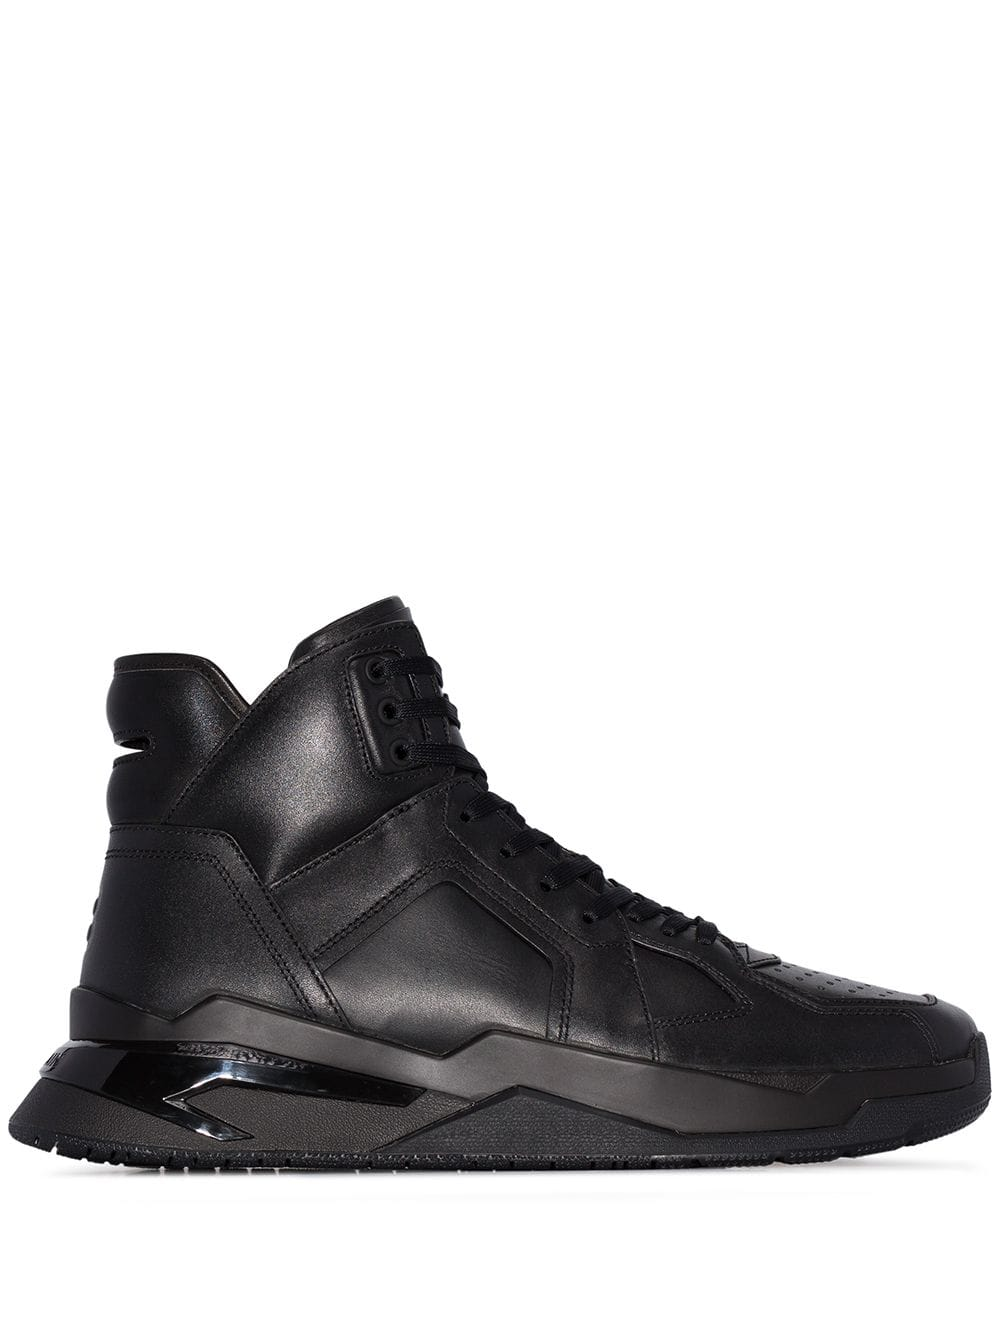 Balmain B-BALL sneakers black - Maison De Fashion